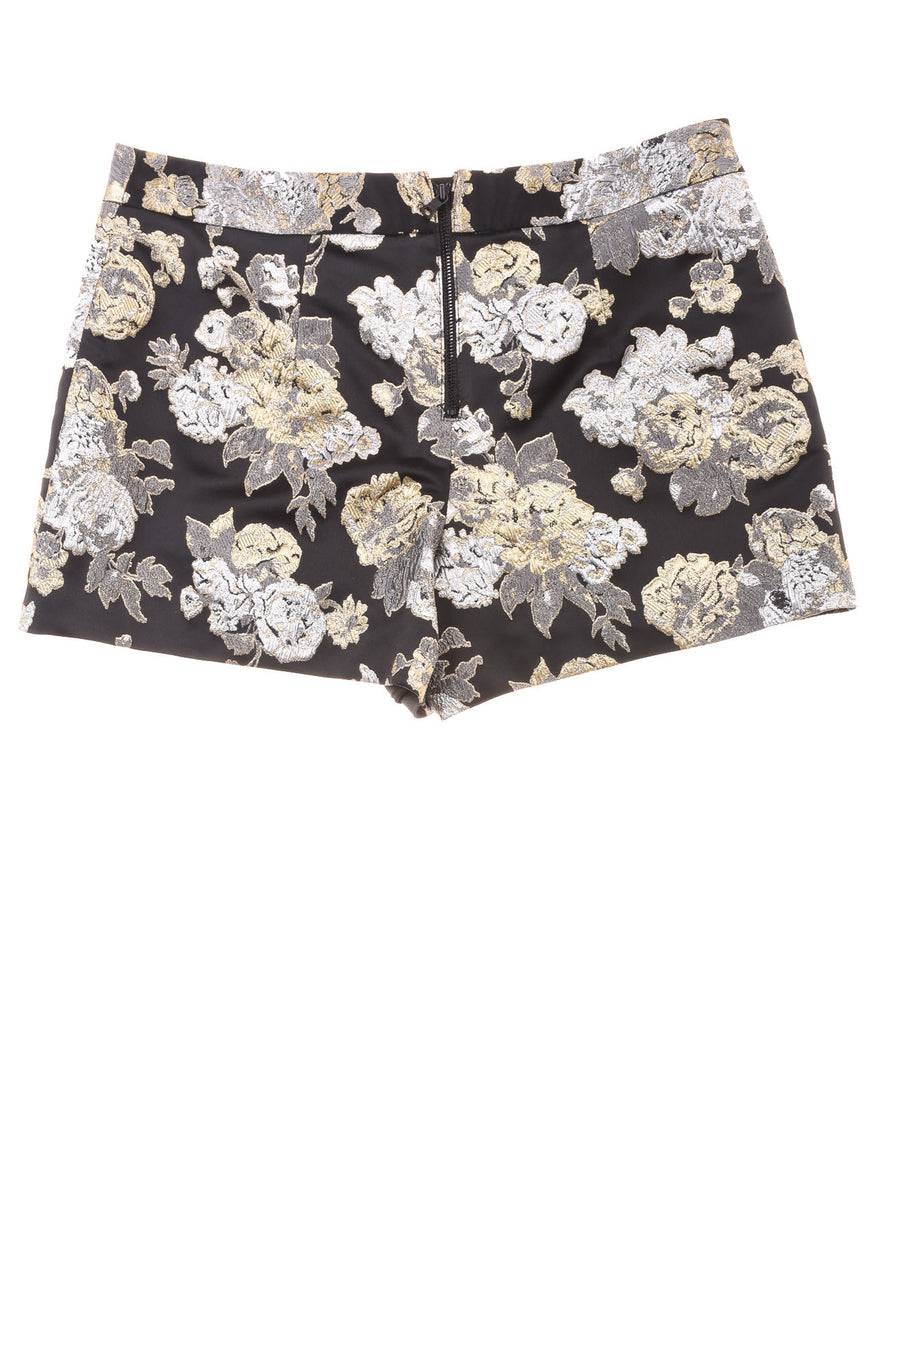 USED Alice & Olivia By Stacey Bendet Women's Shorts 8 Black, Gold Tone, & Silver Tone